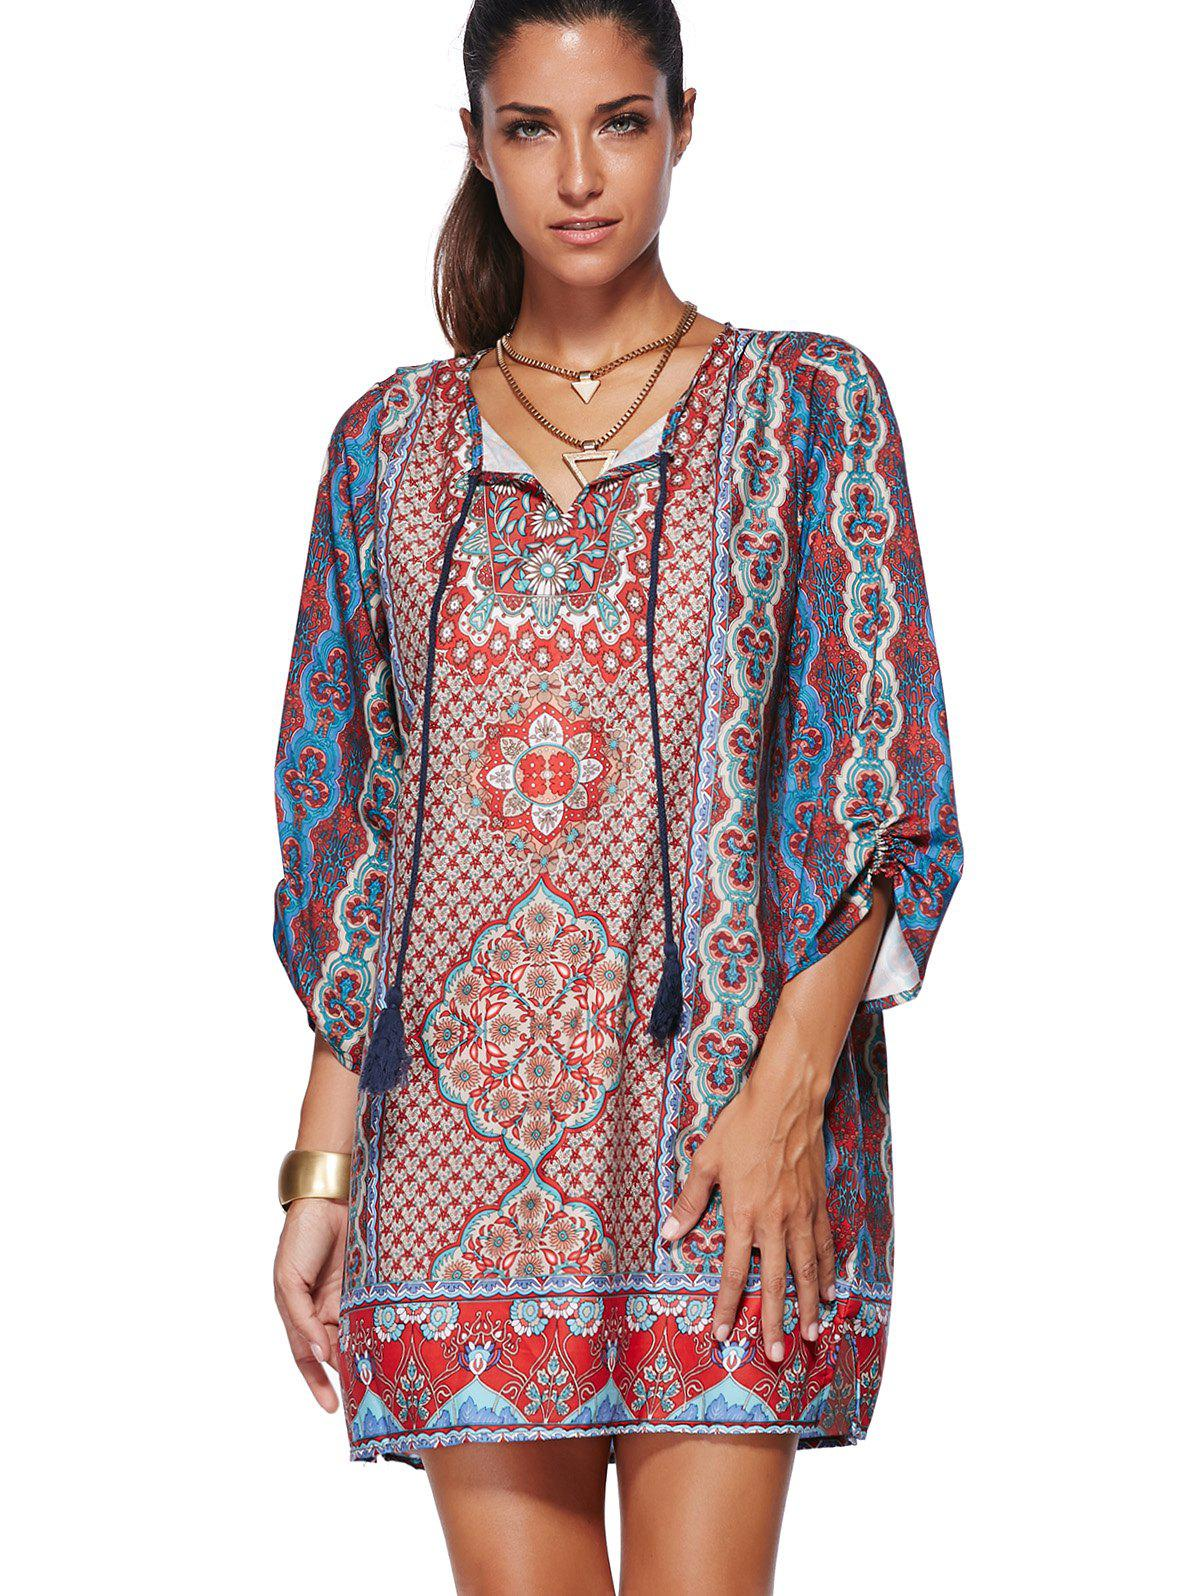 Women's Ethnic V-Neck 3/4 Sleeve Tribal Printed Dress